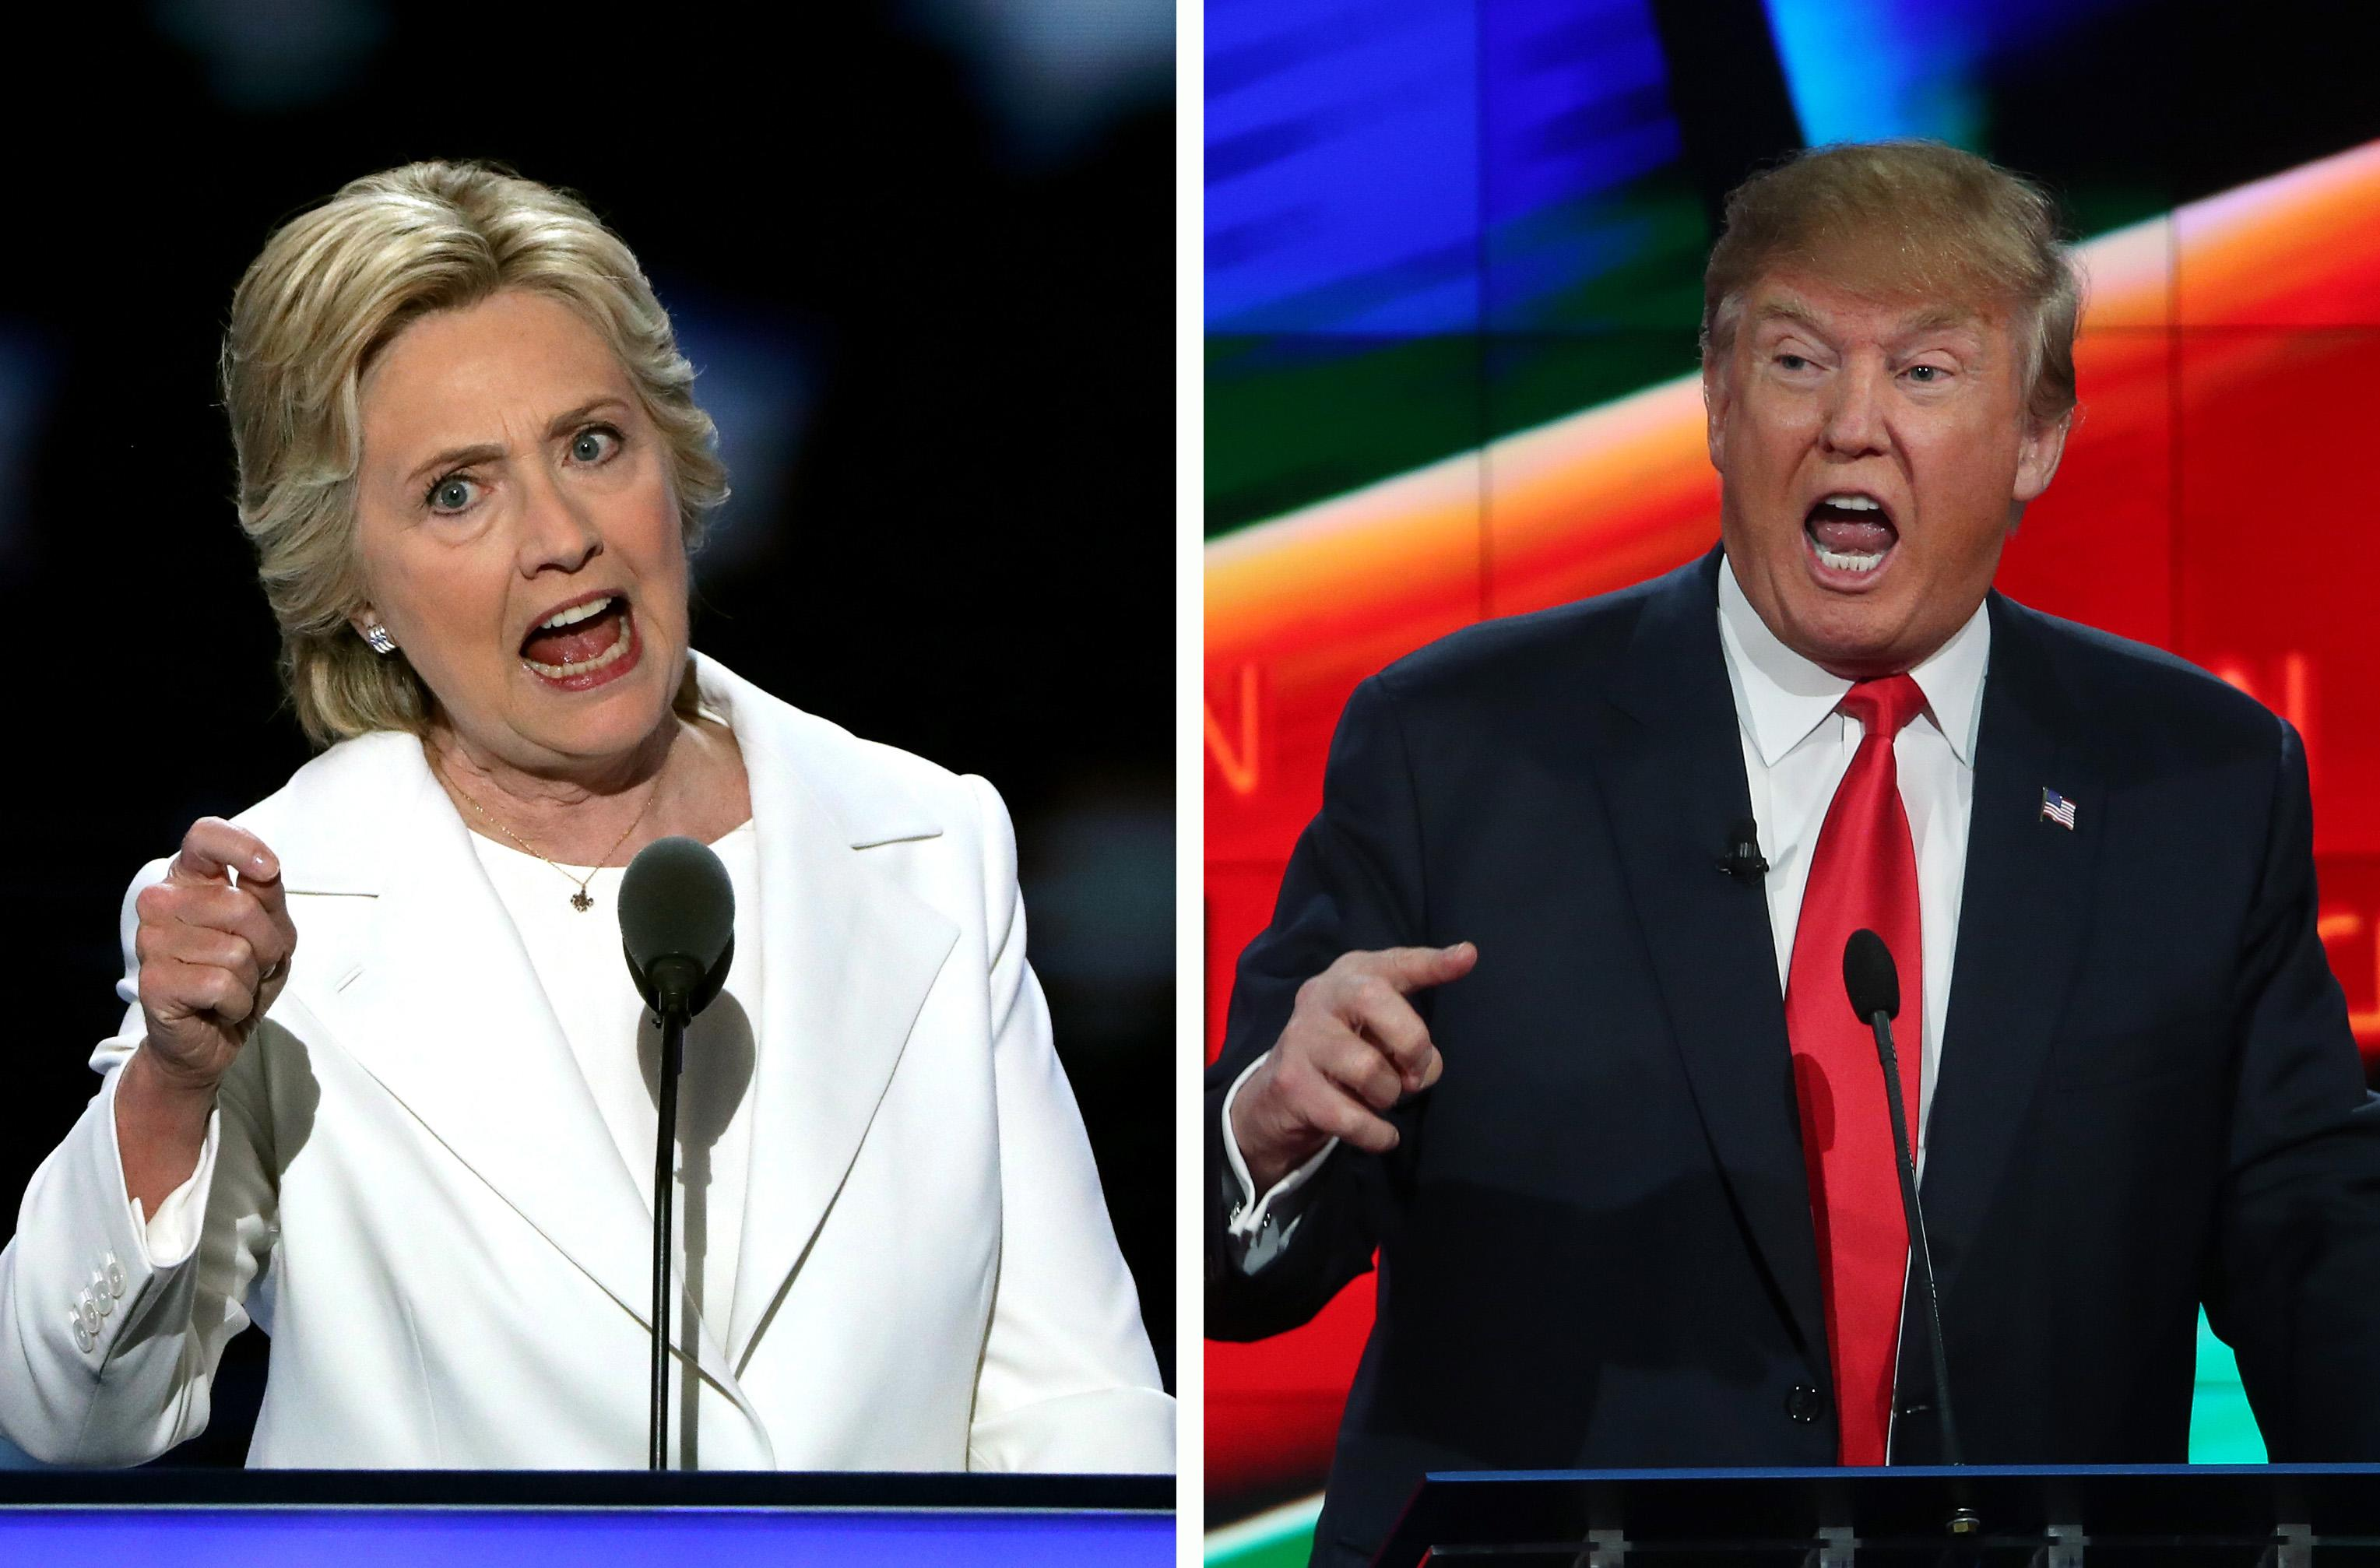 What To Expect When Clinton, Trump Duel